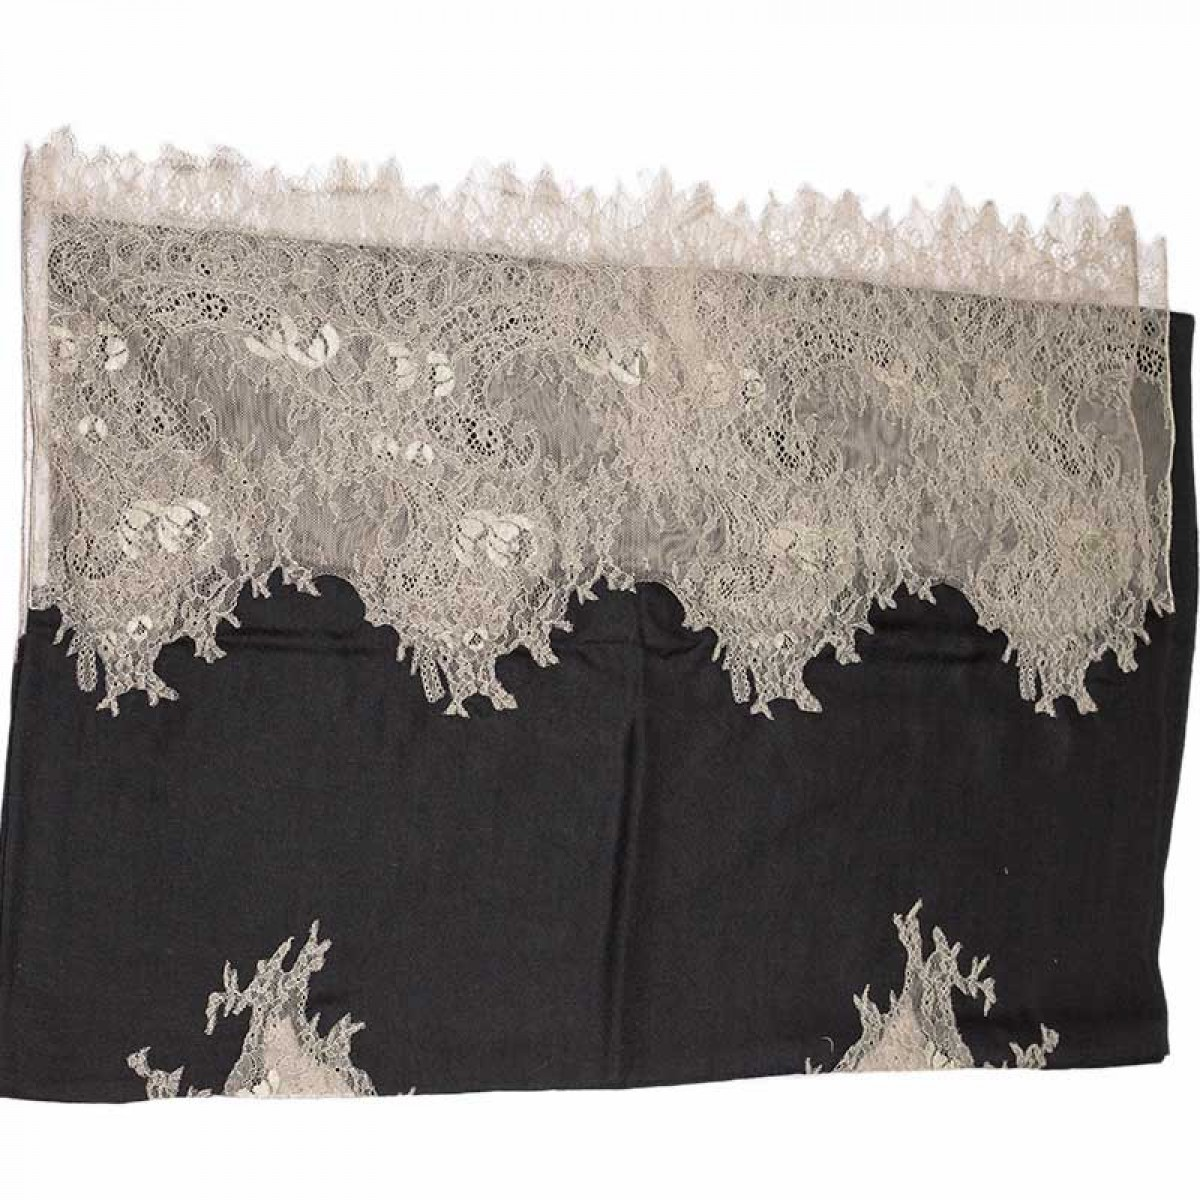 Lace Twill Pashmina Scarf Two Sides - Black